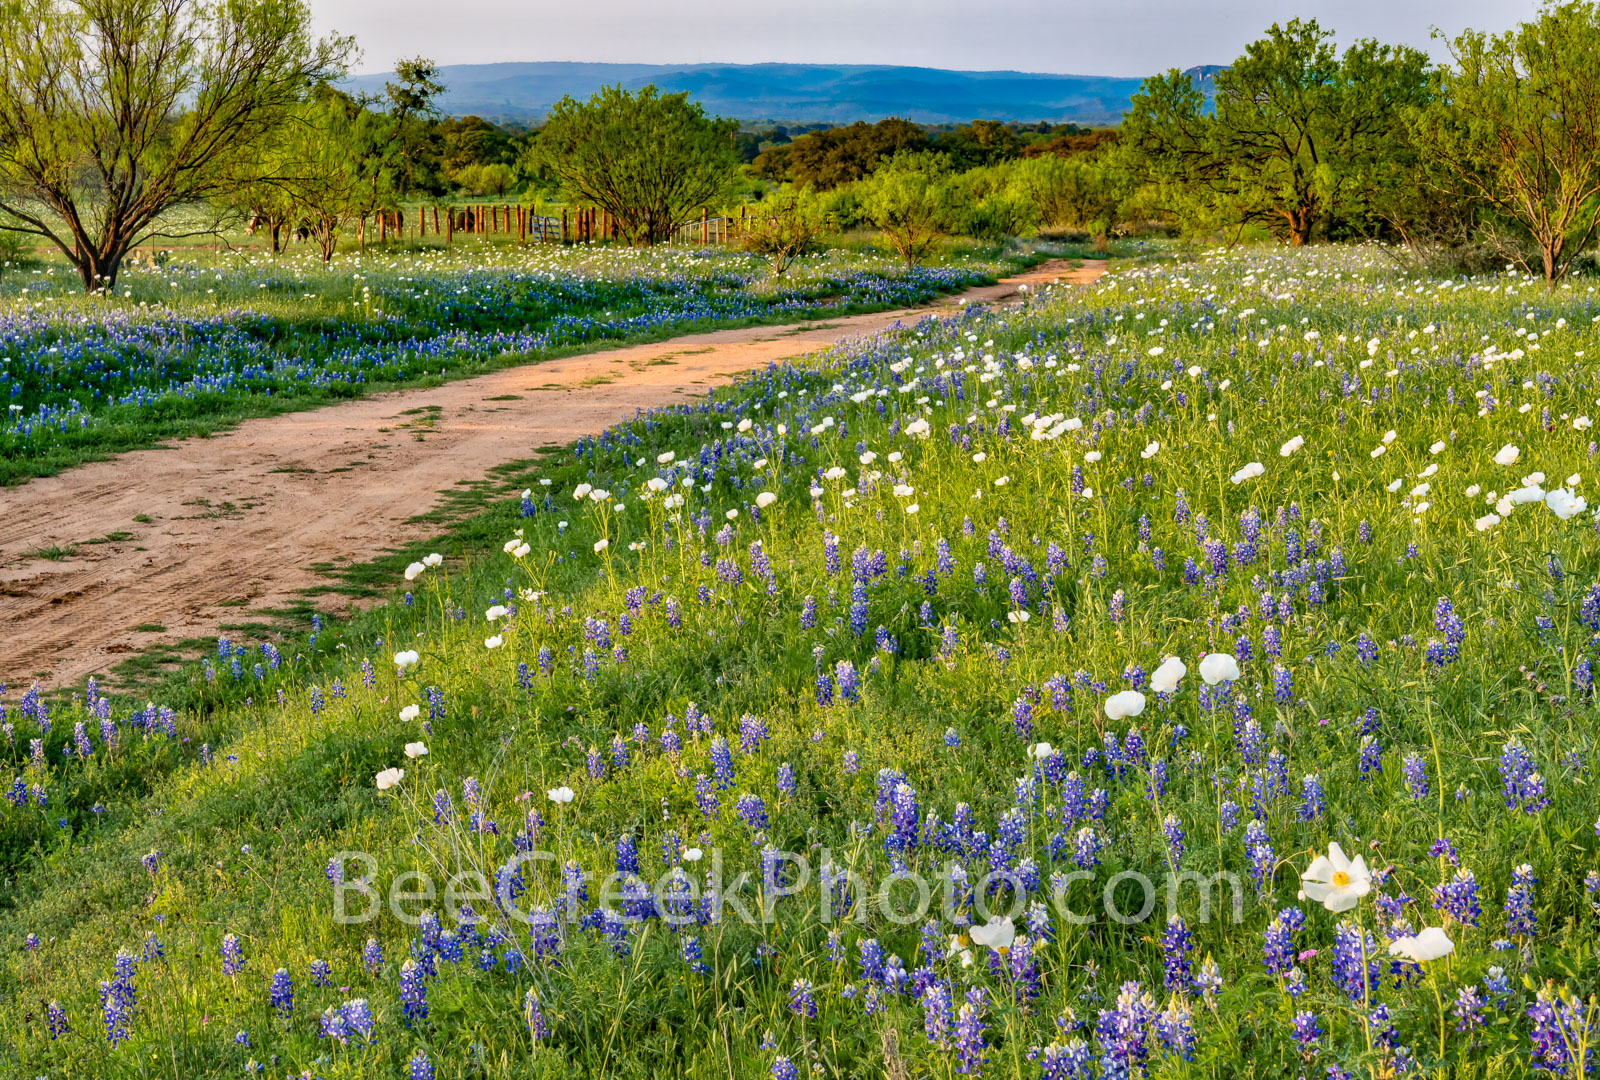 texas bluebonnets, bluebonnet, bluebonnets, texas wildflowers, poppies, wildflowers, texas hill country, hill country, texas, images of bluebonnets, images of wildflowers, dirt road, ranch road, , photo